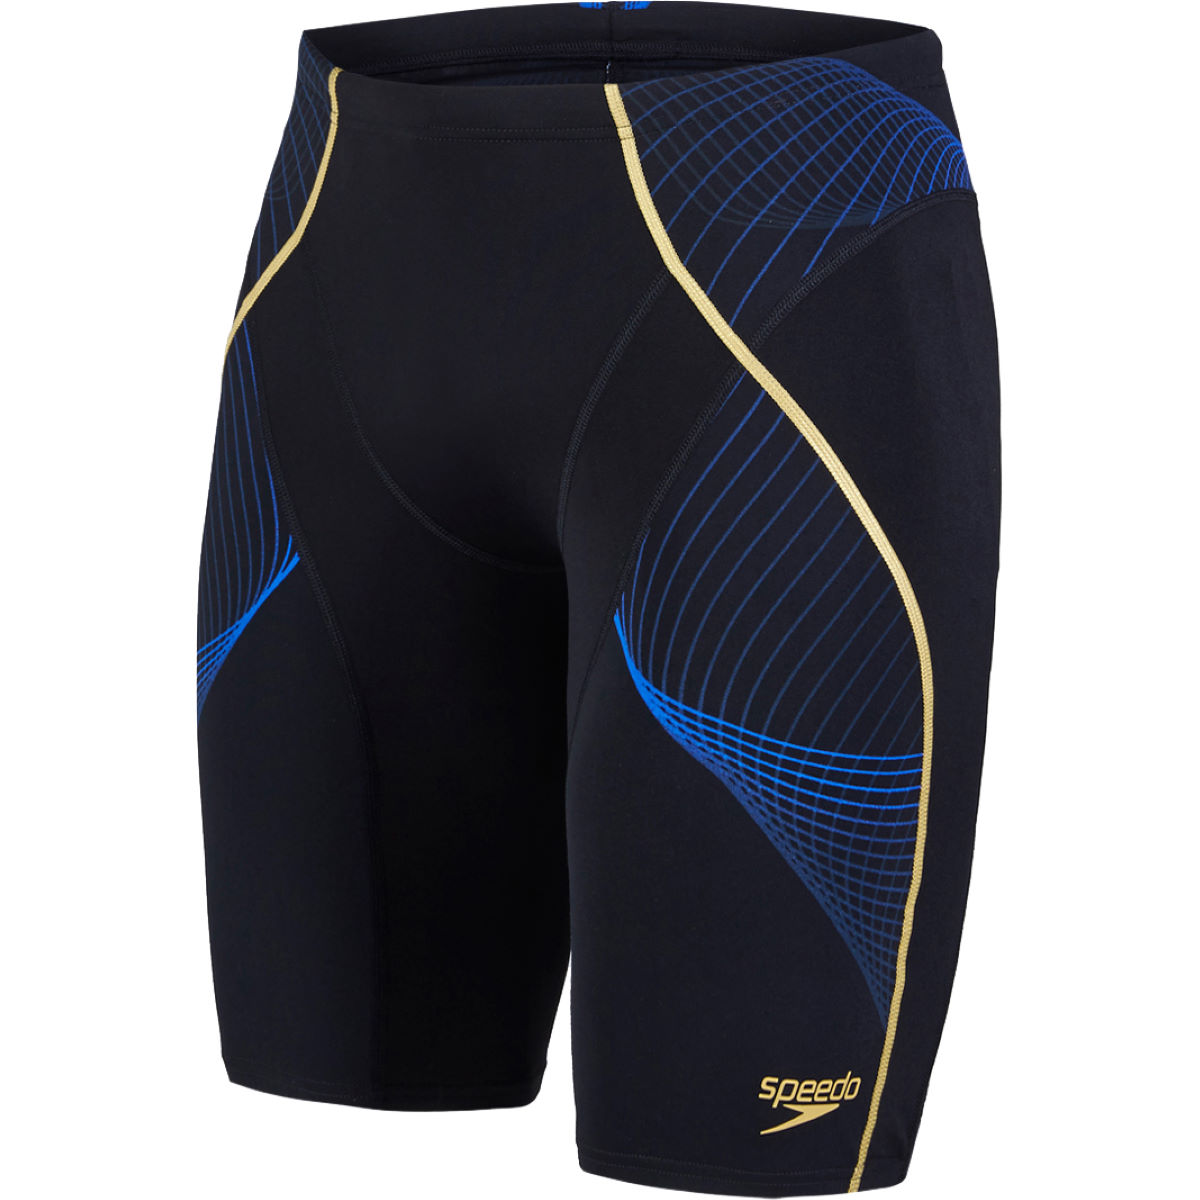 Jammer Speedo Speedo Fit Pinnacle (AH16) - 34 Noir/Bleu Maillots de bain Adulte